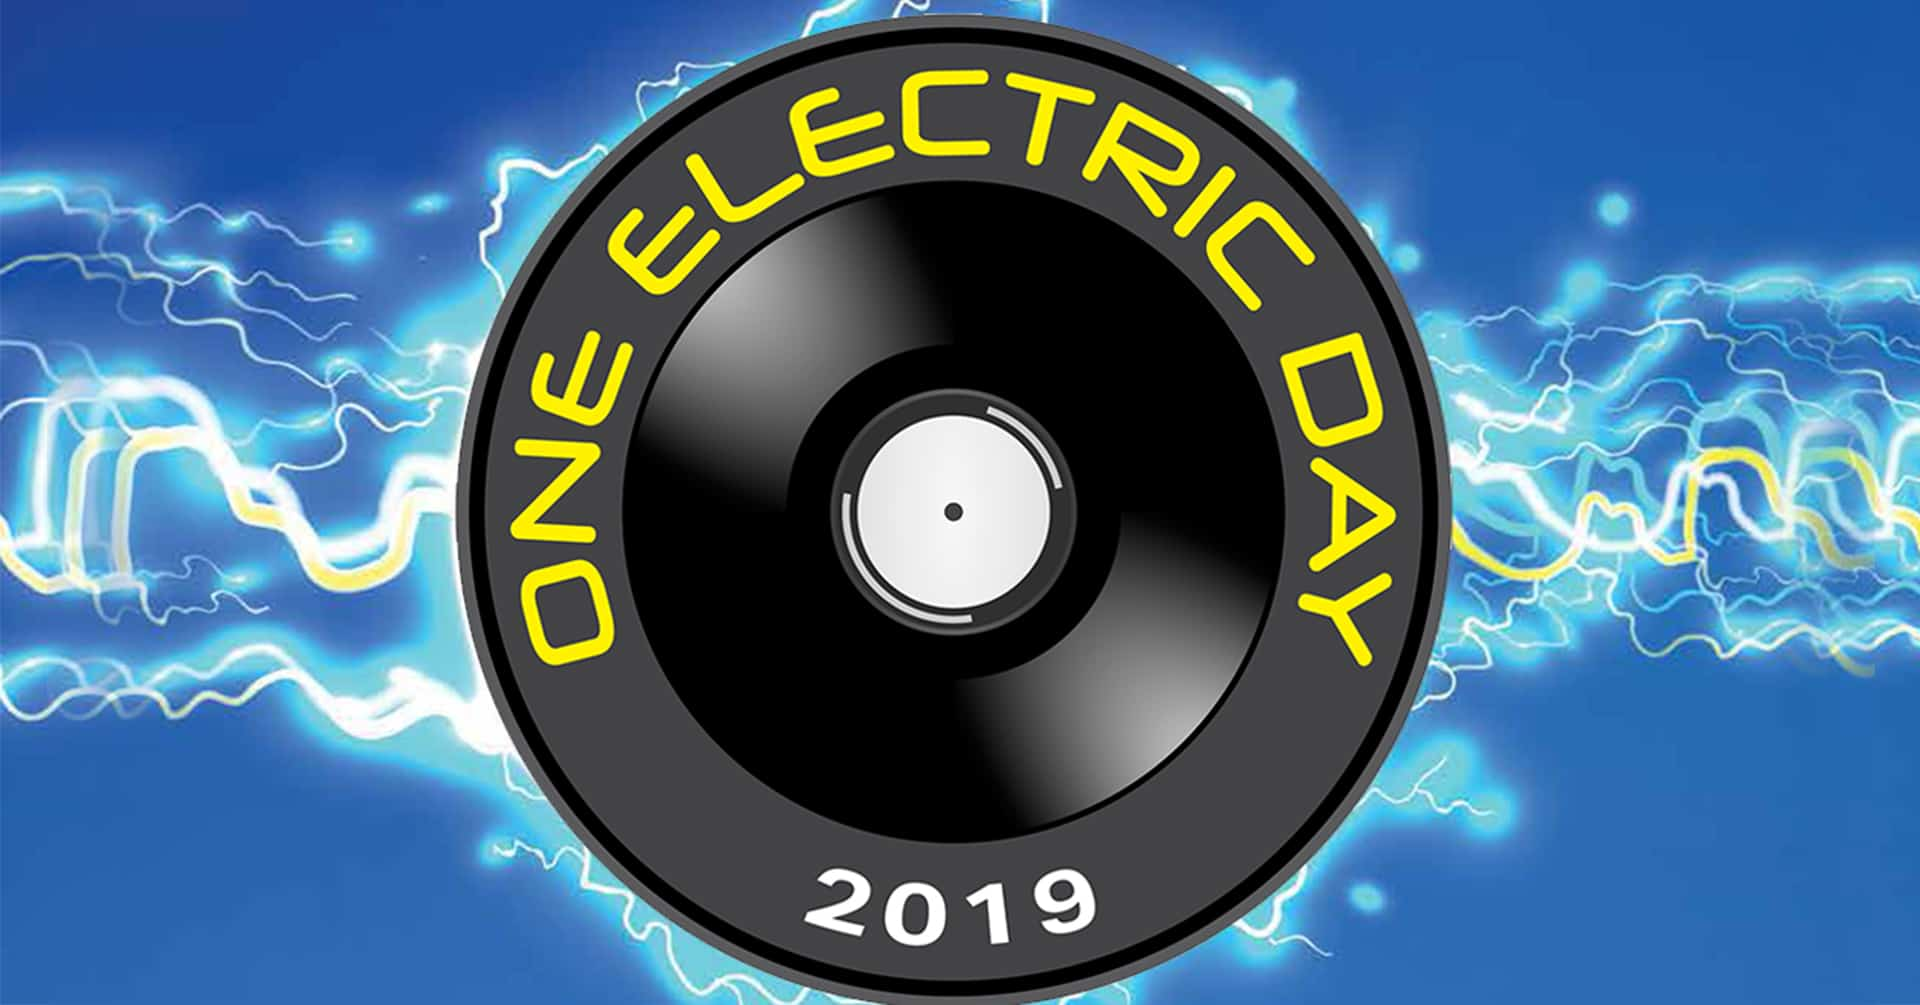 Scene News: One Electric Day Expands Nationally In 2019 | John Farnham Headlines